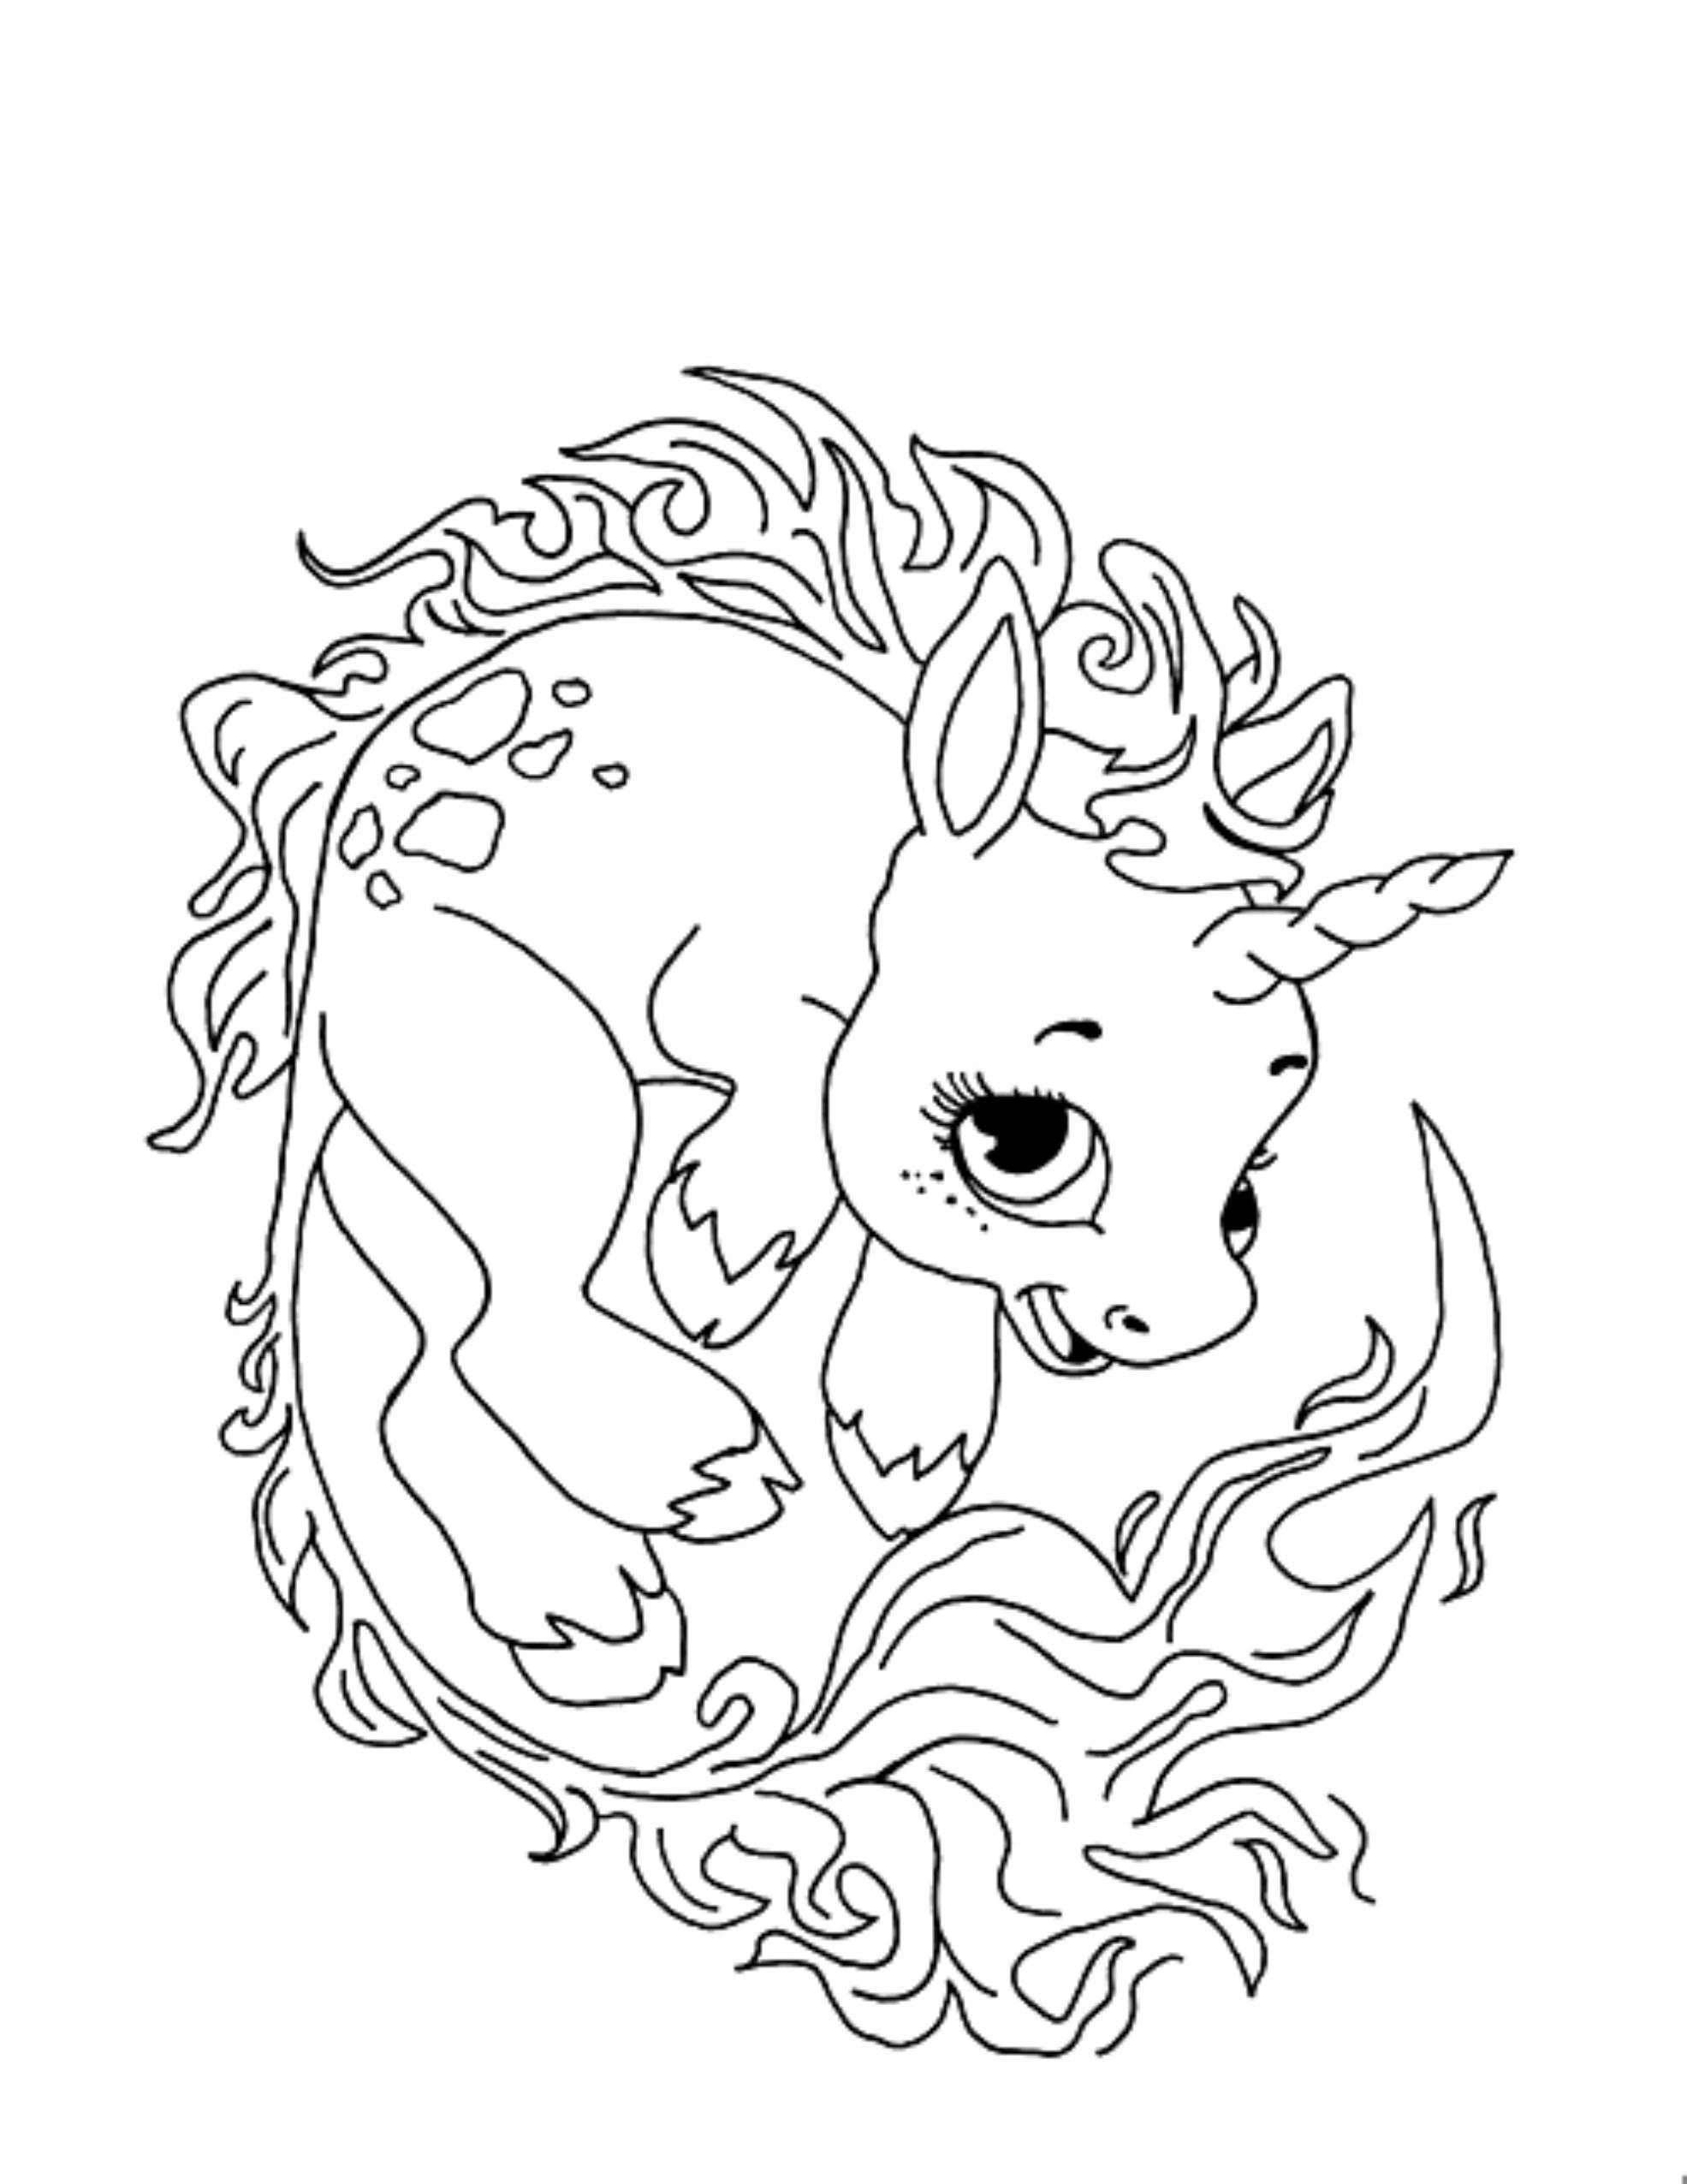 Cute Unicorn Coloring Sheets From The Thousand Pictures On The Web About Cute Unicorn Color Unicorn Coloring Pages Dragon Coloring Page Animal Coloring Pages